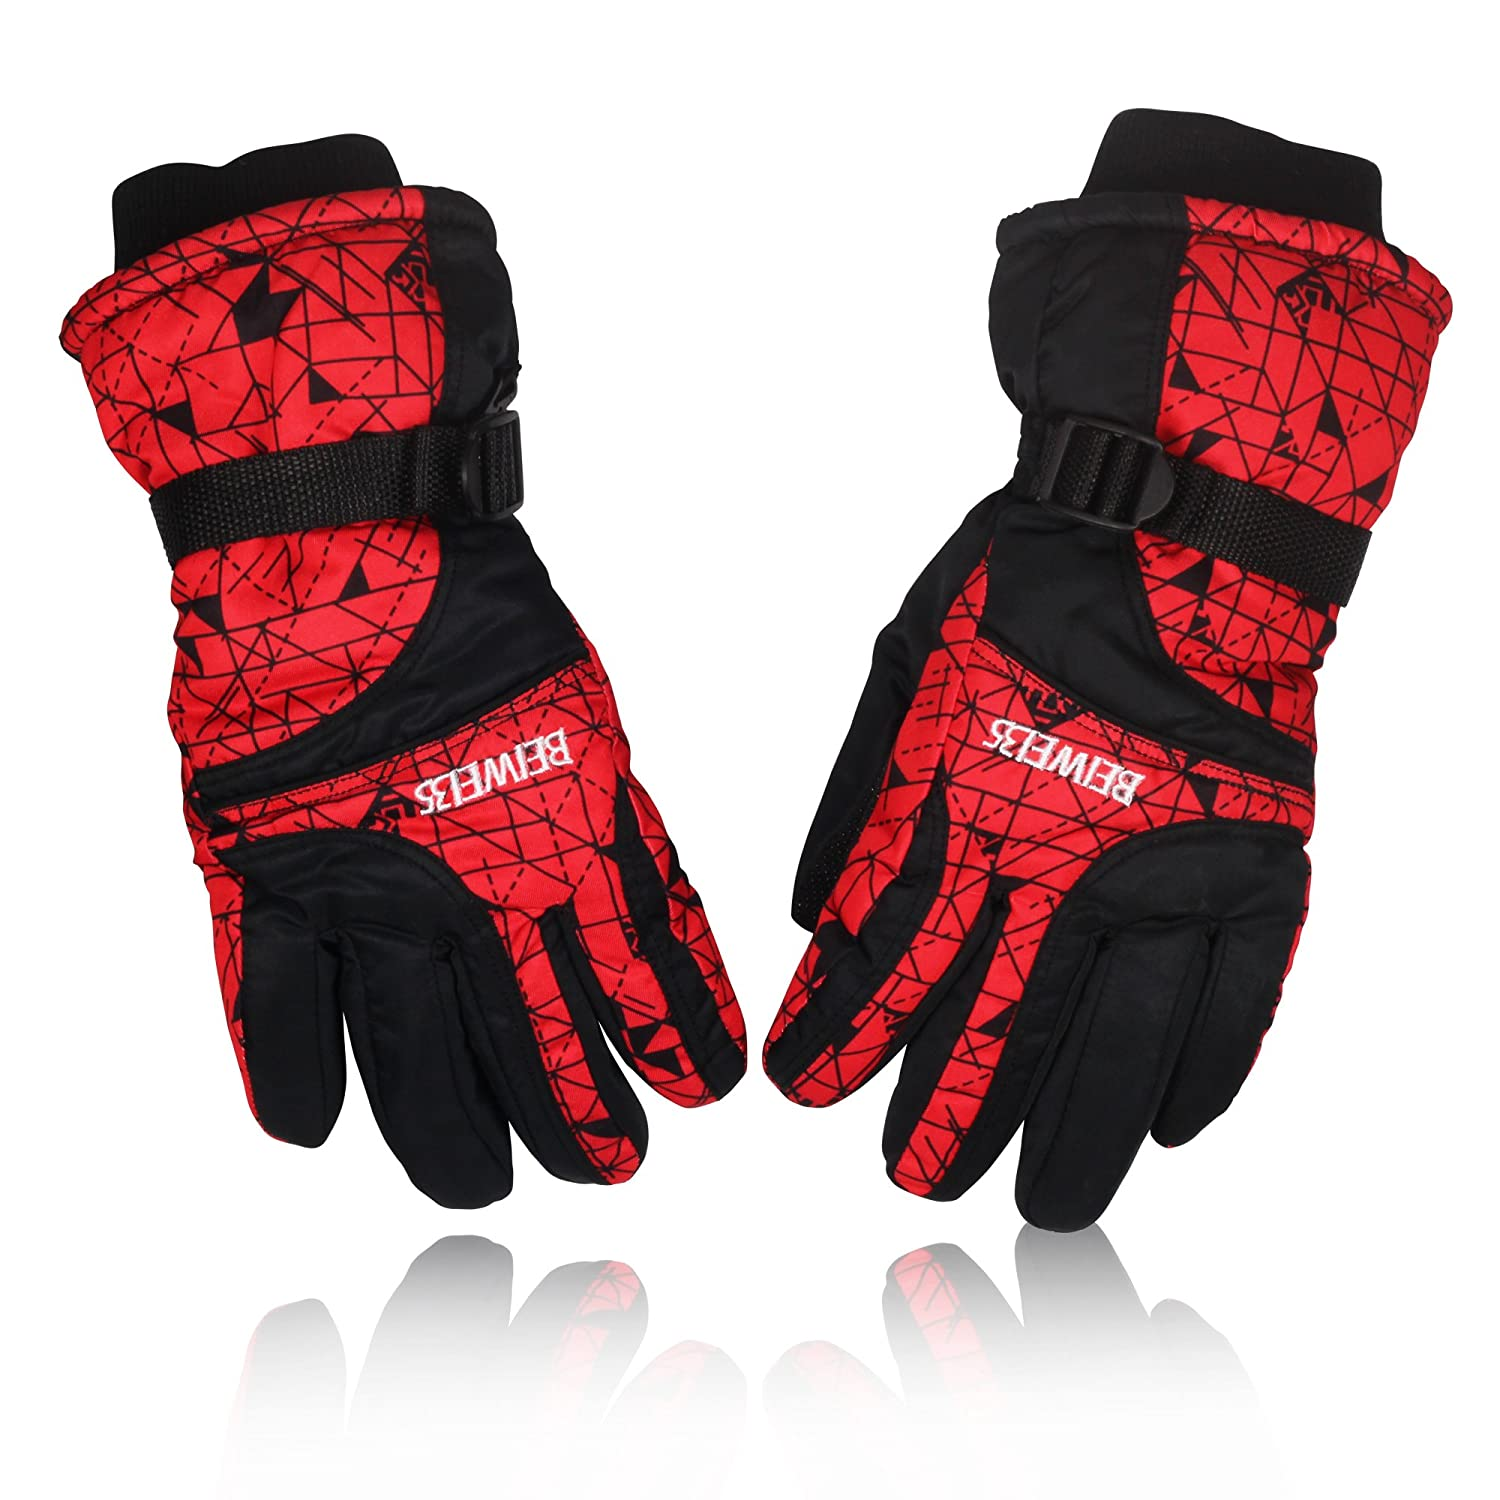 YUEDGE Men's And Women's Windproof Snowproof Ski Snowboard Motorcycle Gloves Winter Snow Warm Gloves YUEDGE-Gloves02-Red